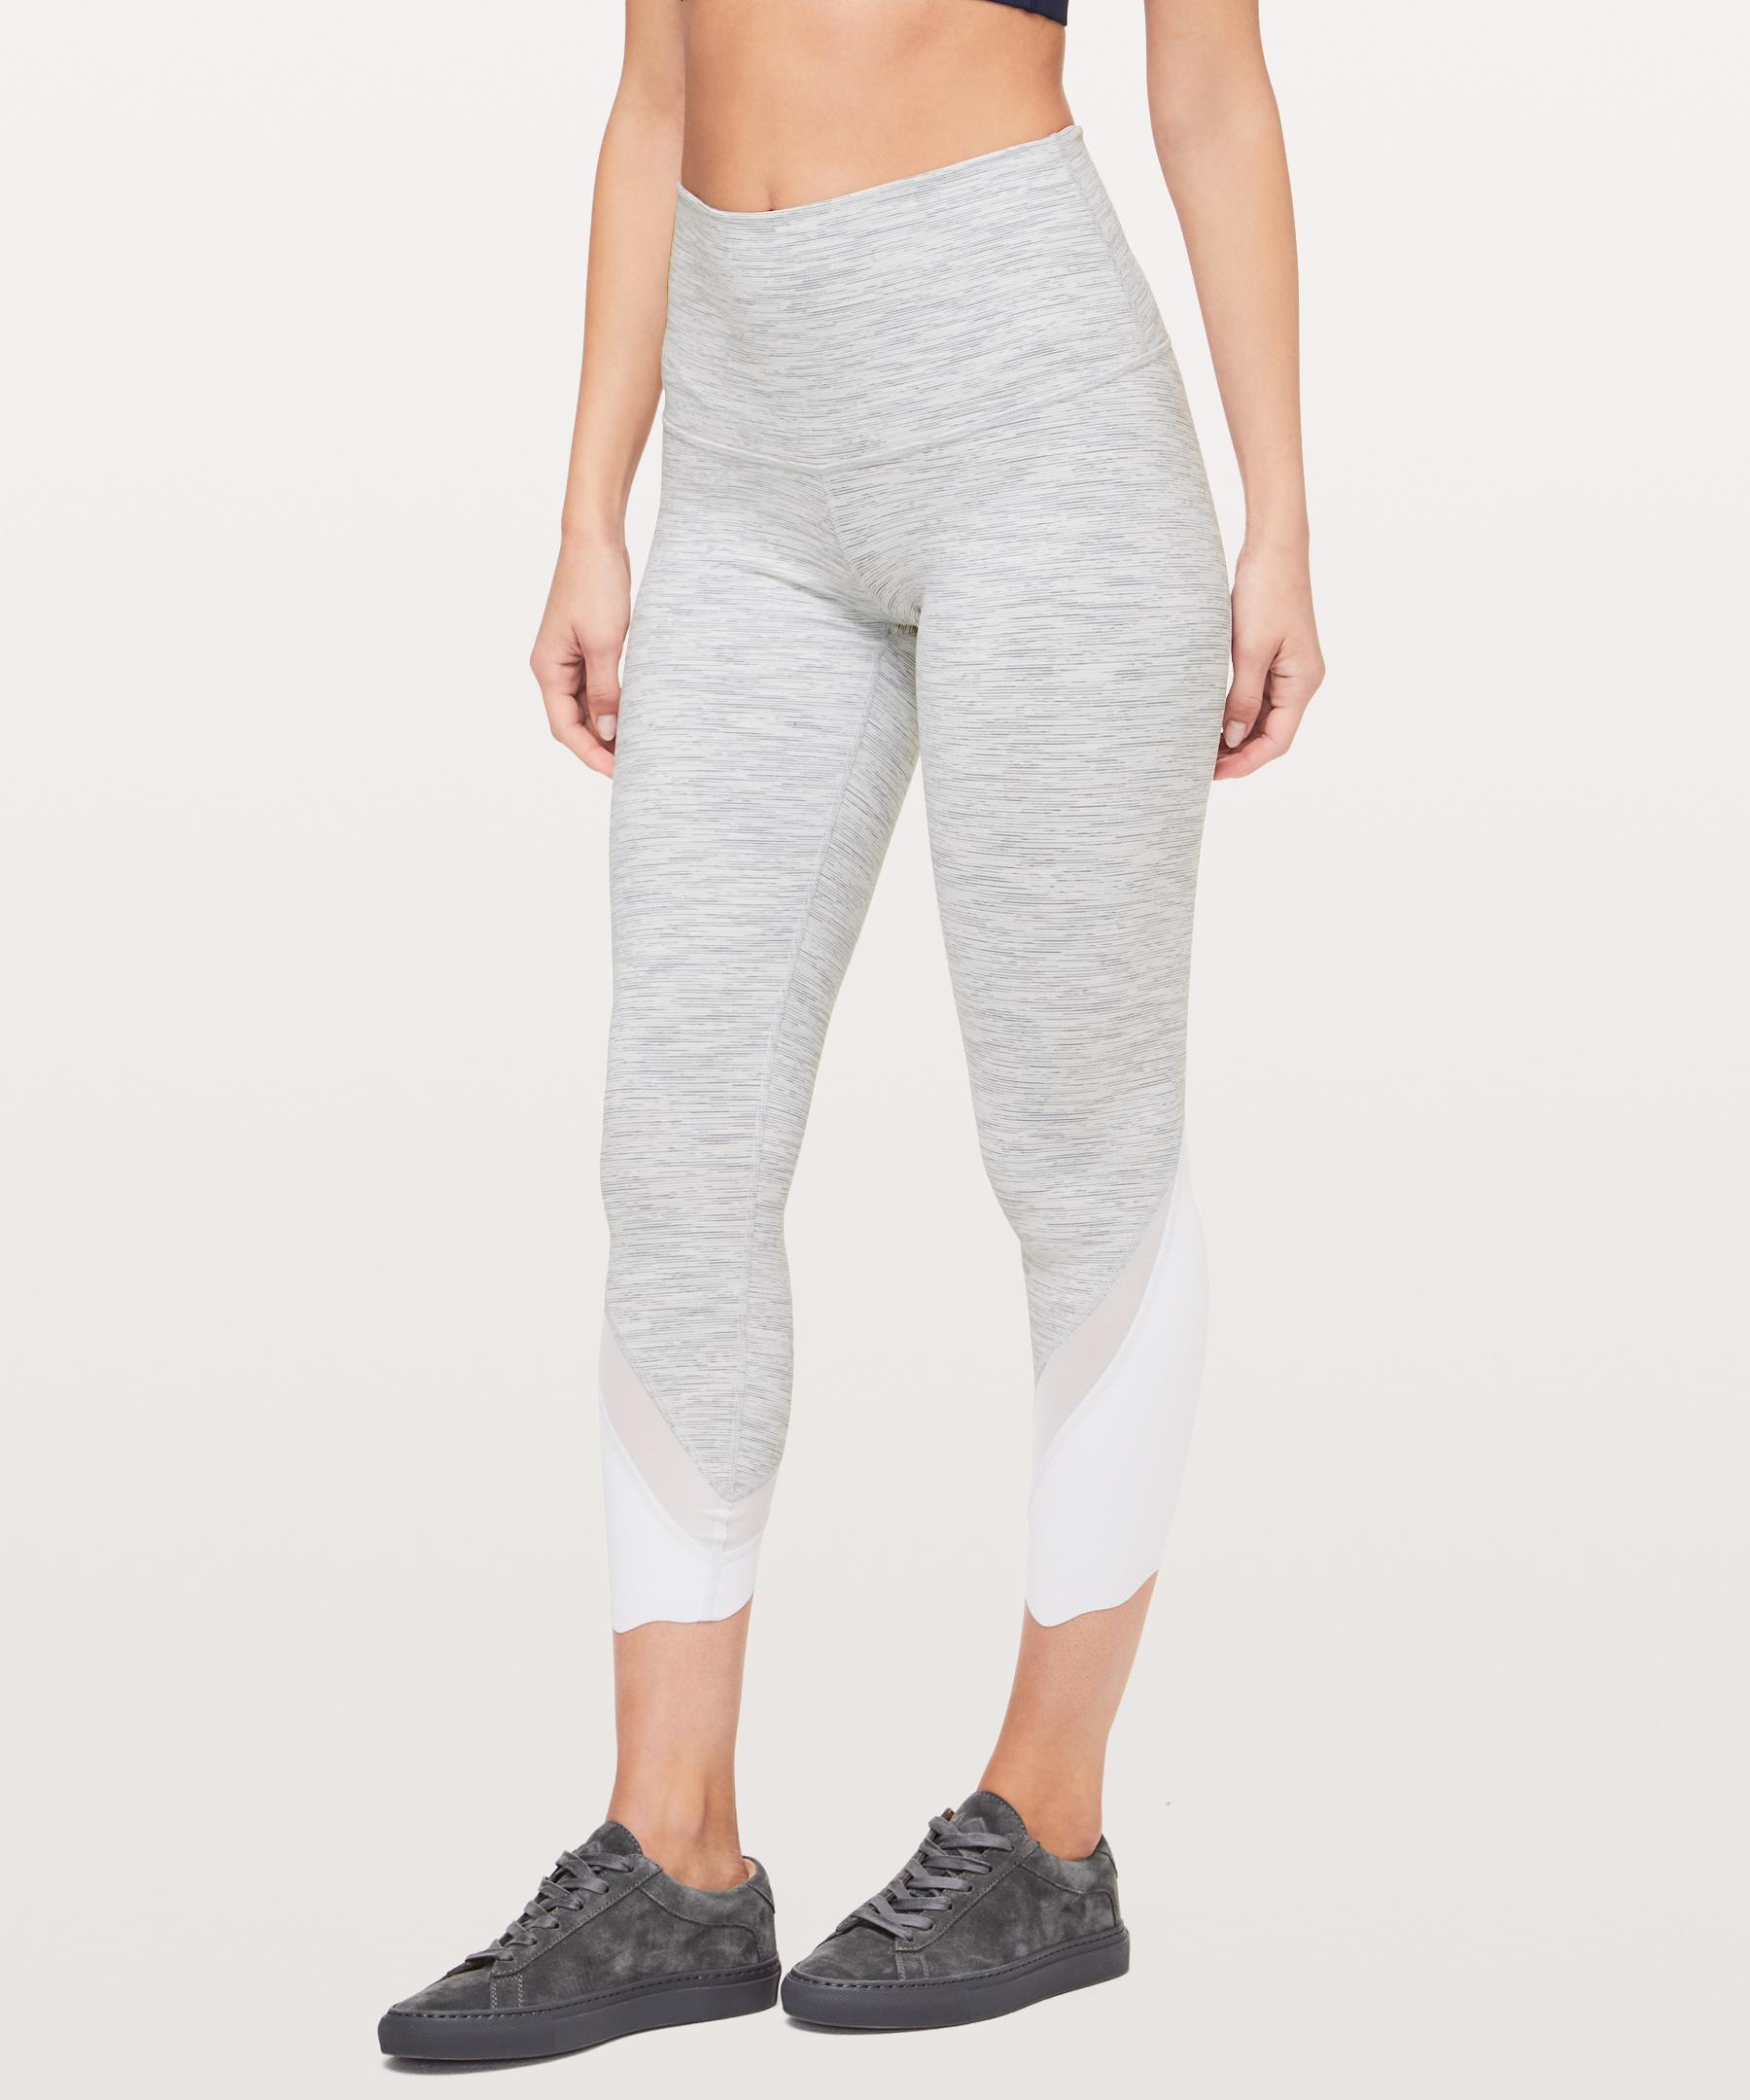 0430580d0 lululemon athletica - Gray Wunder Under Crop Ii (special Edition)  luon  Scallop 24. View fullscreen